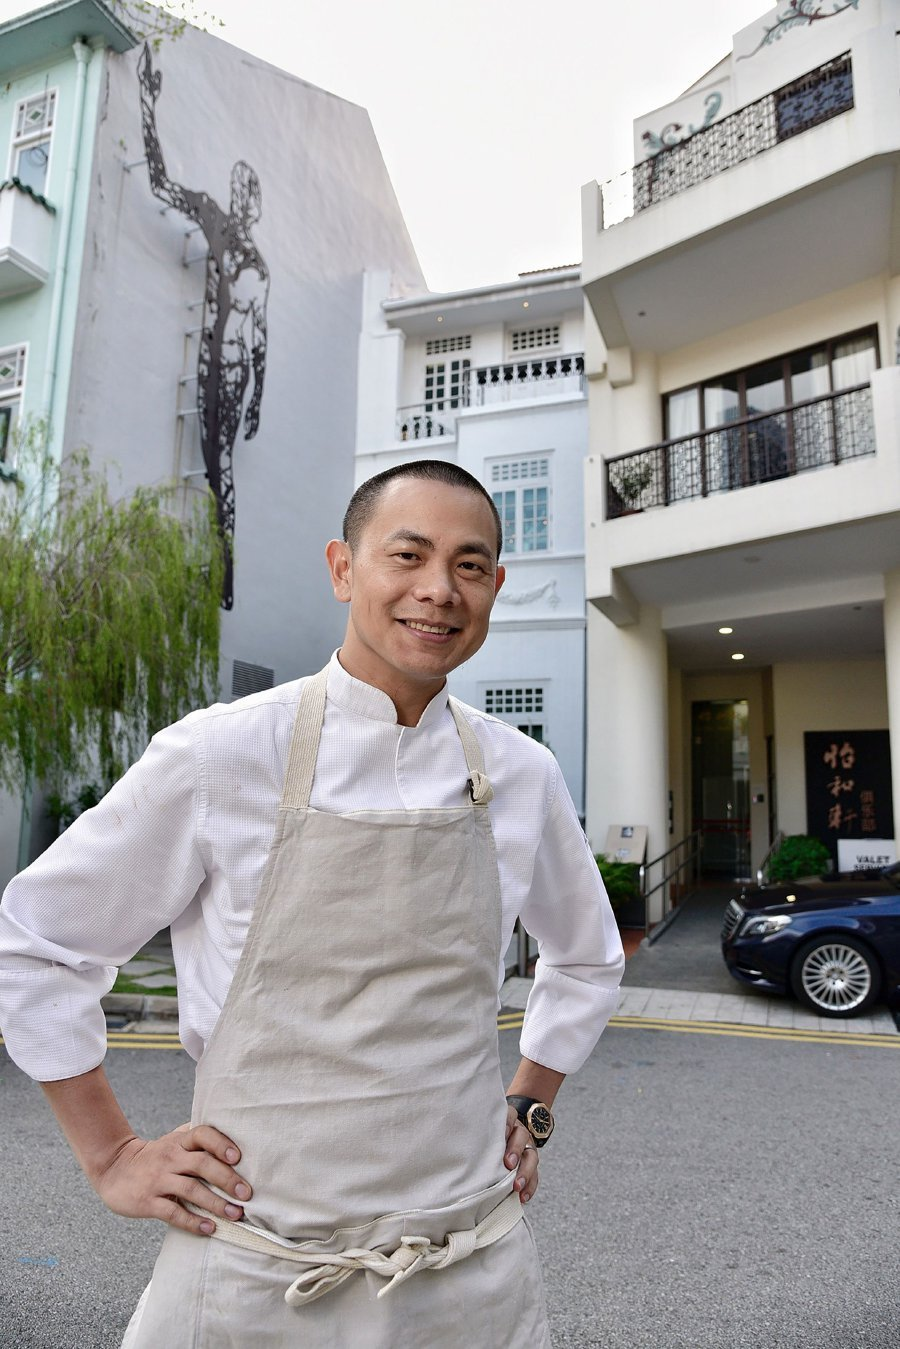 """This photograph taken on Oct 11, 2017 and made available by The Straits Times shows chef-owner Andre Chiangposing outside his two-Michelin-starred restaurant """"Andre"""" in Singapore. A Singapore chef with two Michelin stars has announced he wants to be stripped of the honour and will close his popular eatery, the latest restaurateur to walk away from the culinary distinction. (AFP PHOTO)"""